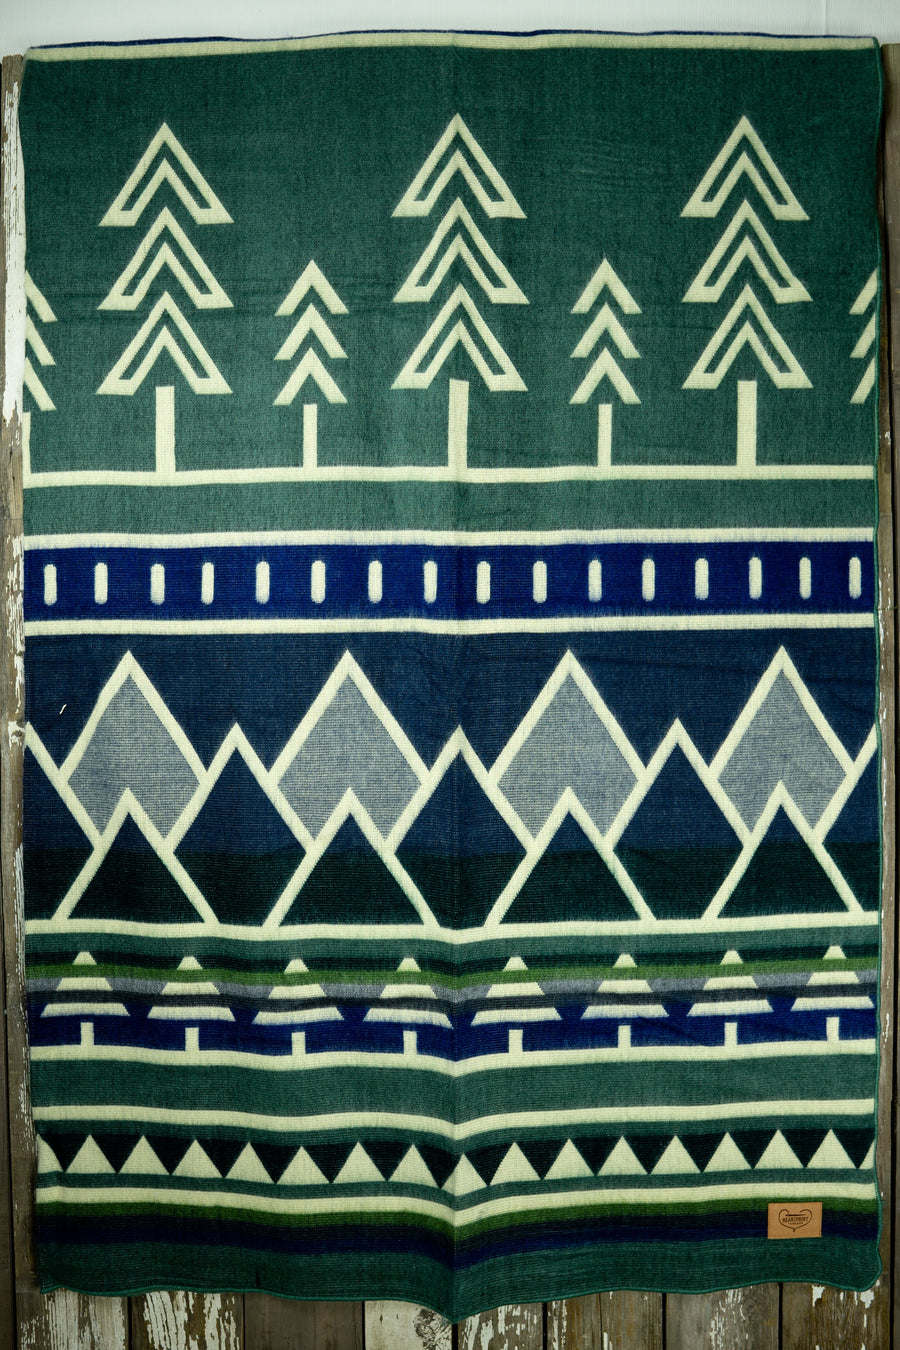 Colorado Blue Tree Line Heartprint Queen Blanket